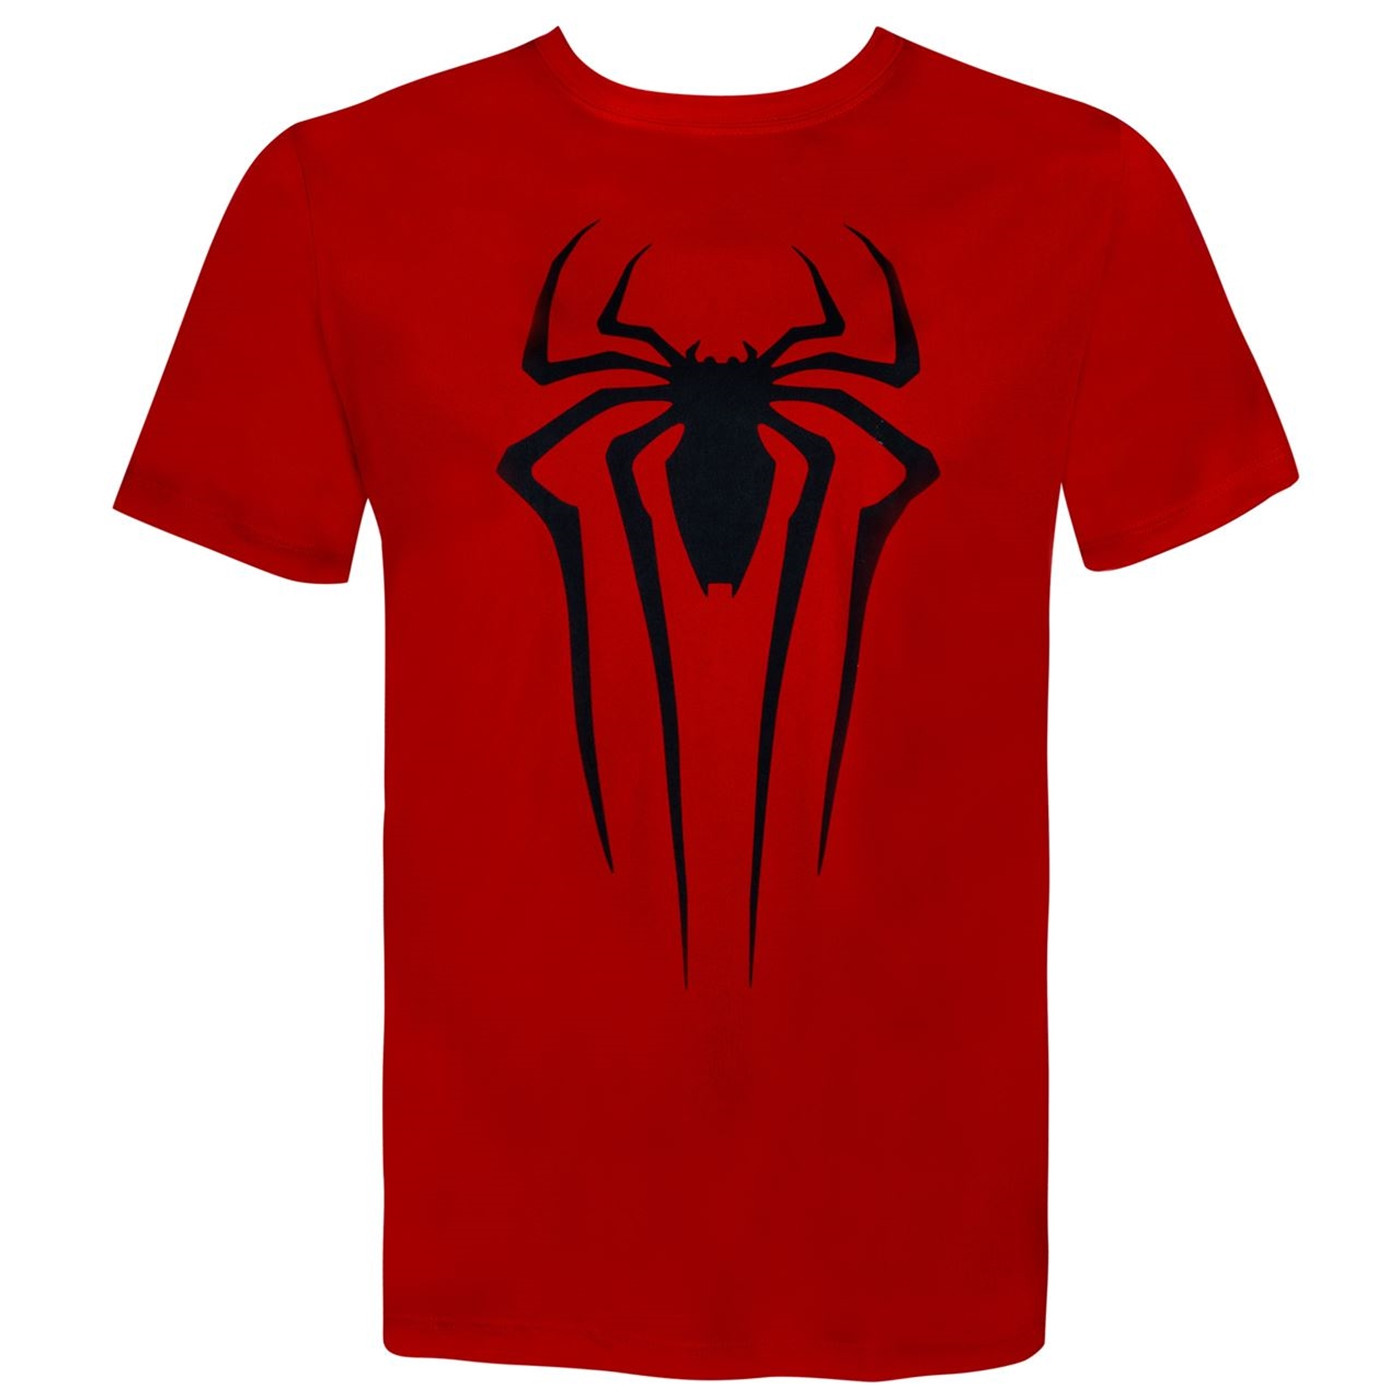 Spider-Man Symbol Dry Fit Men's T-Shirt